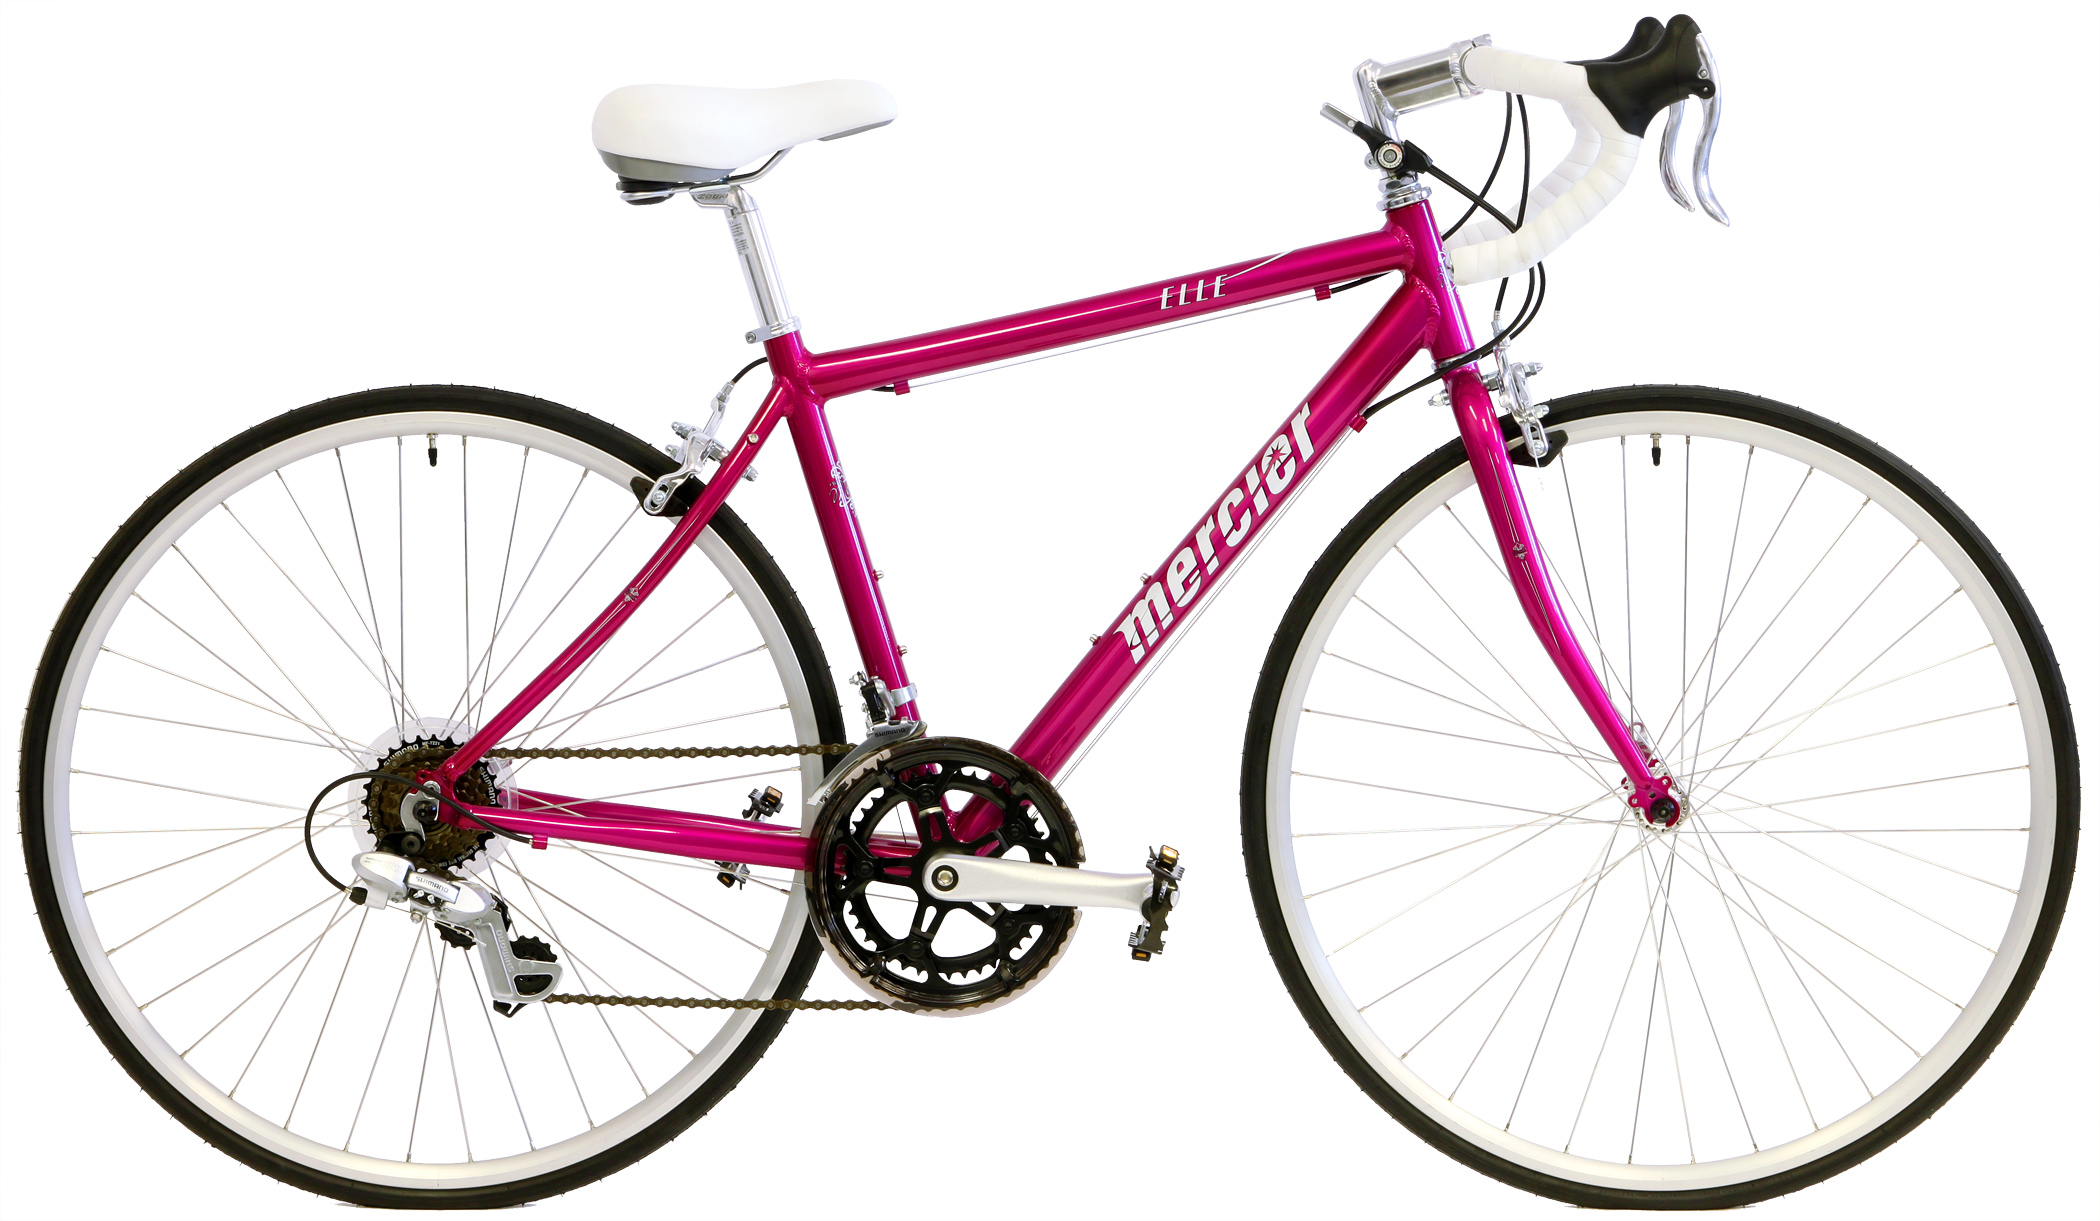 ELLE SPORT    - WOMEN'S ALUMINUM 14sp ROAD BIKE w/ SHIMANO